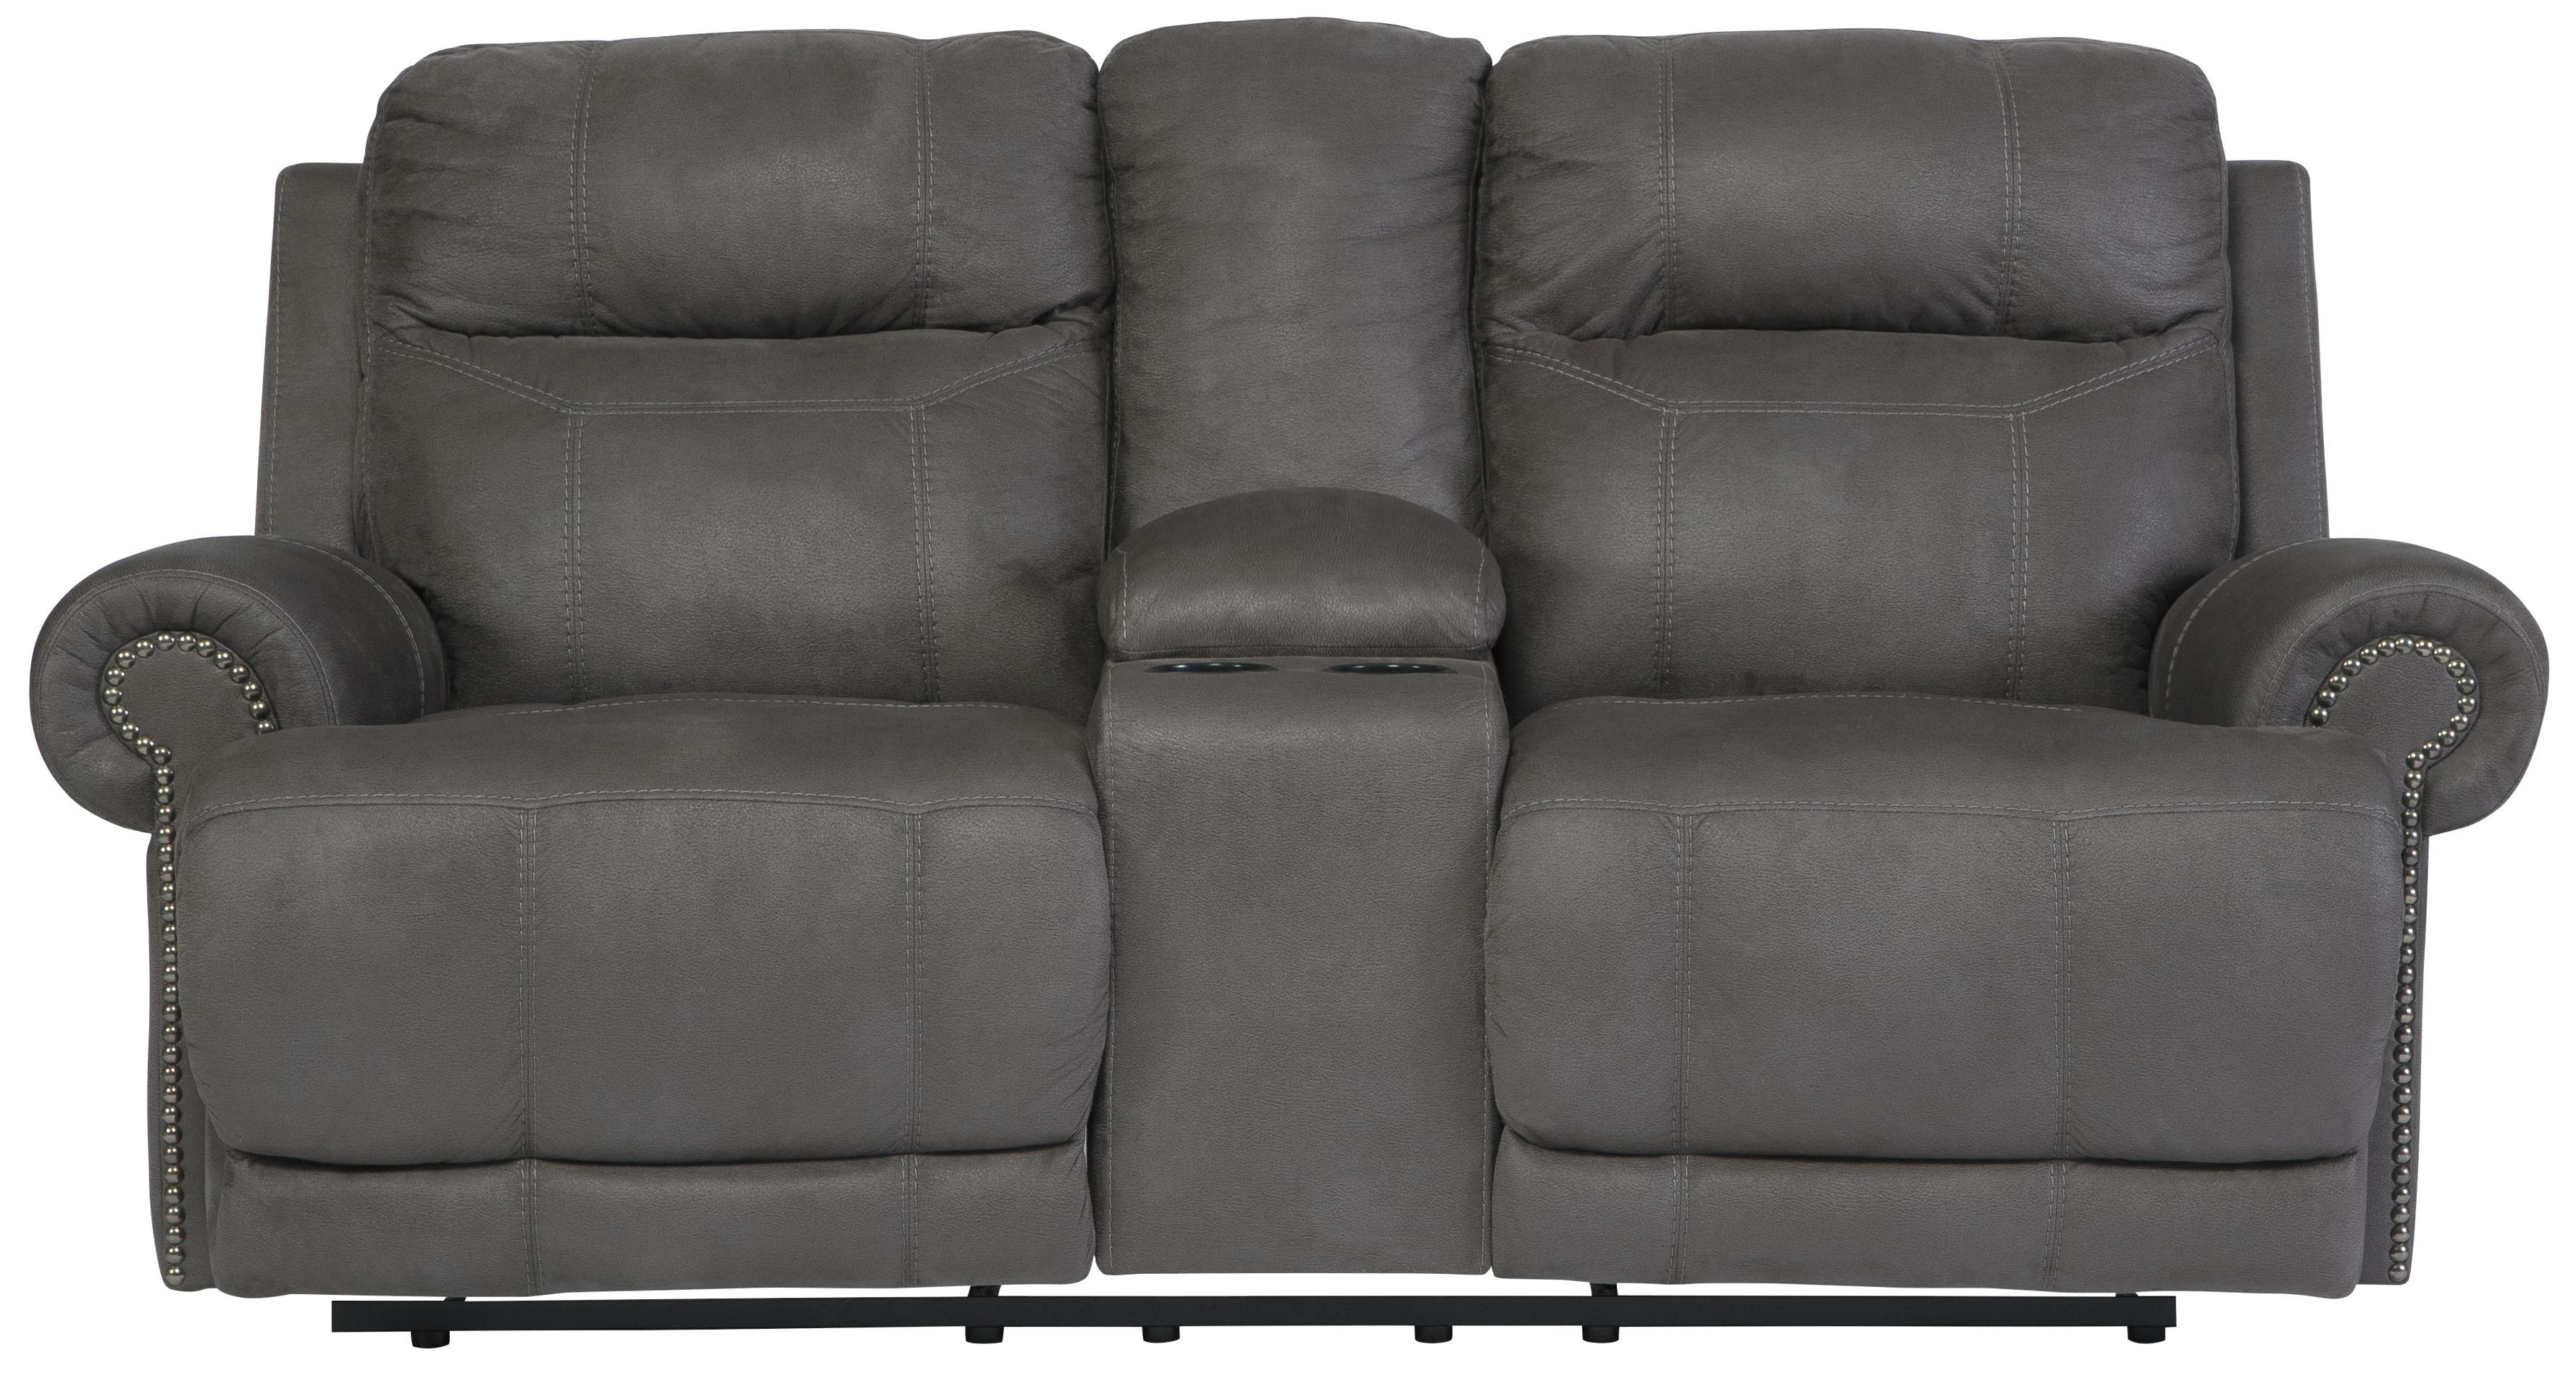 Austere - Gray Double Reclining Loveseat w/ Console & Power by Signature Design at Fisher Home Furnishings